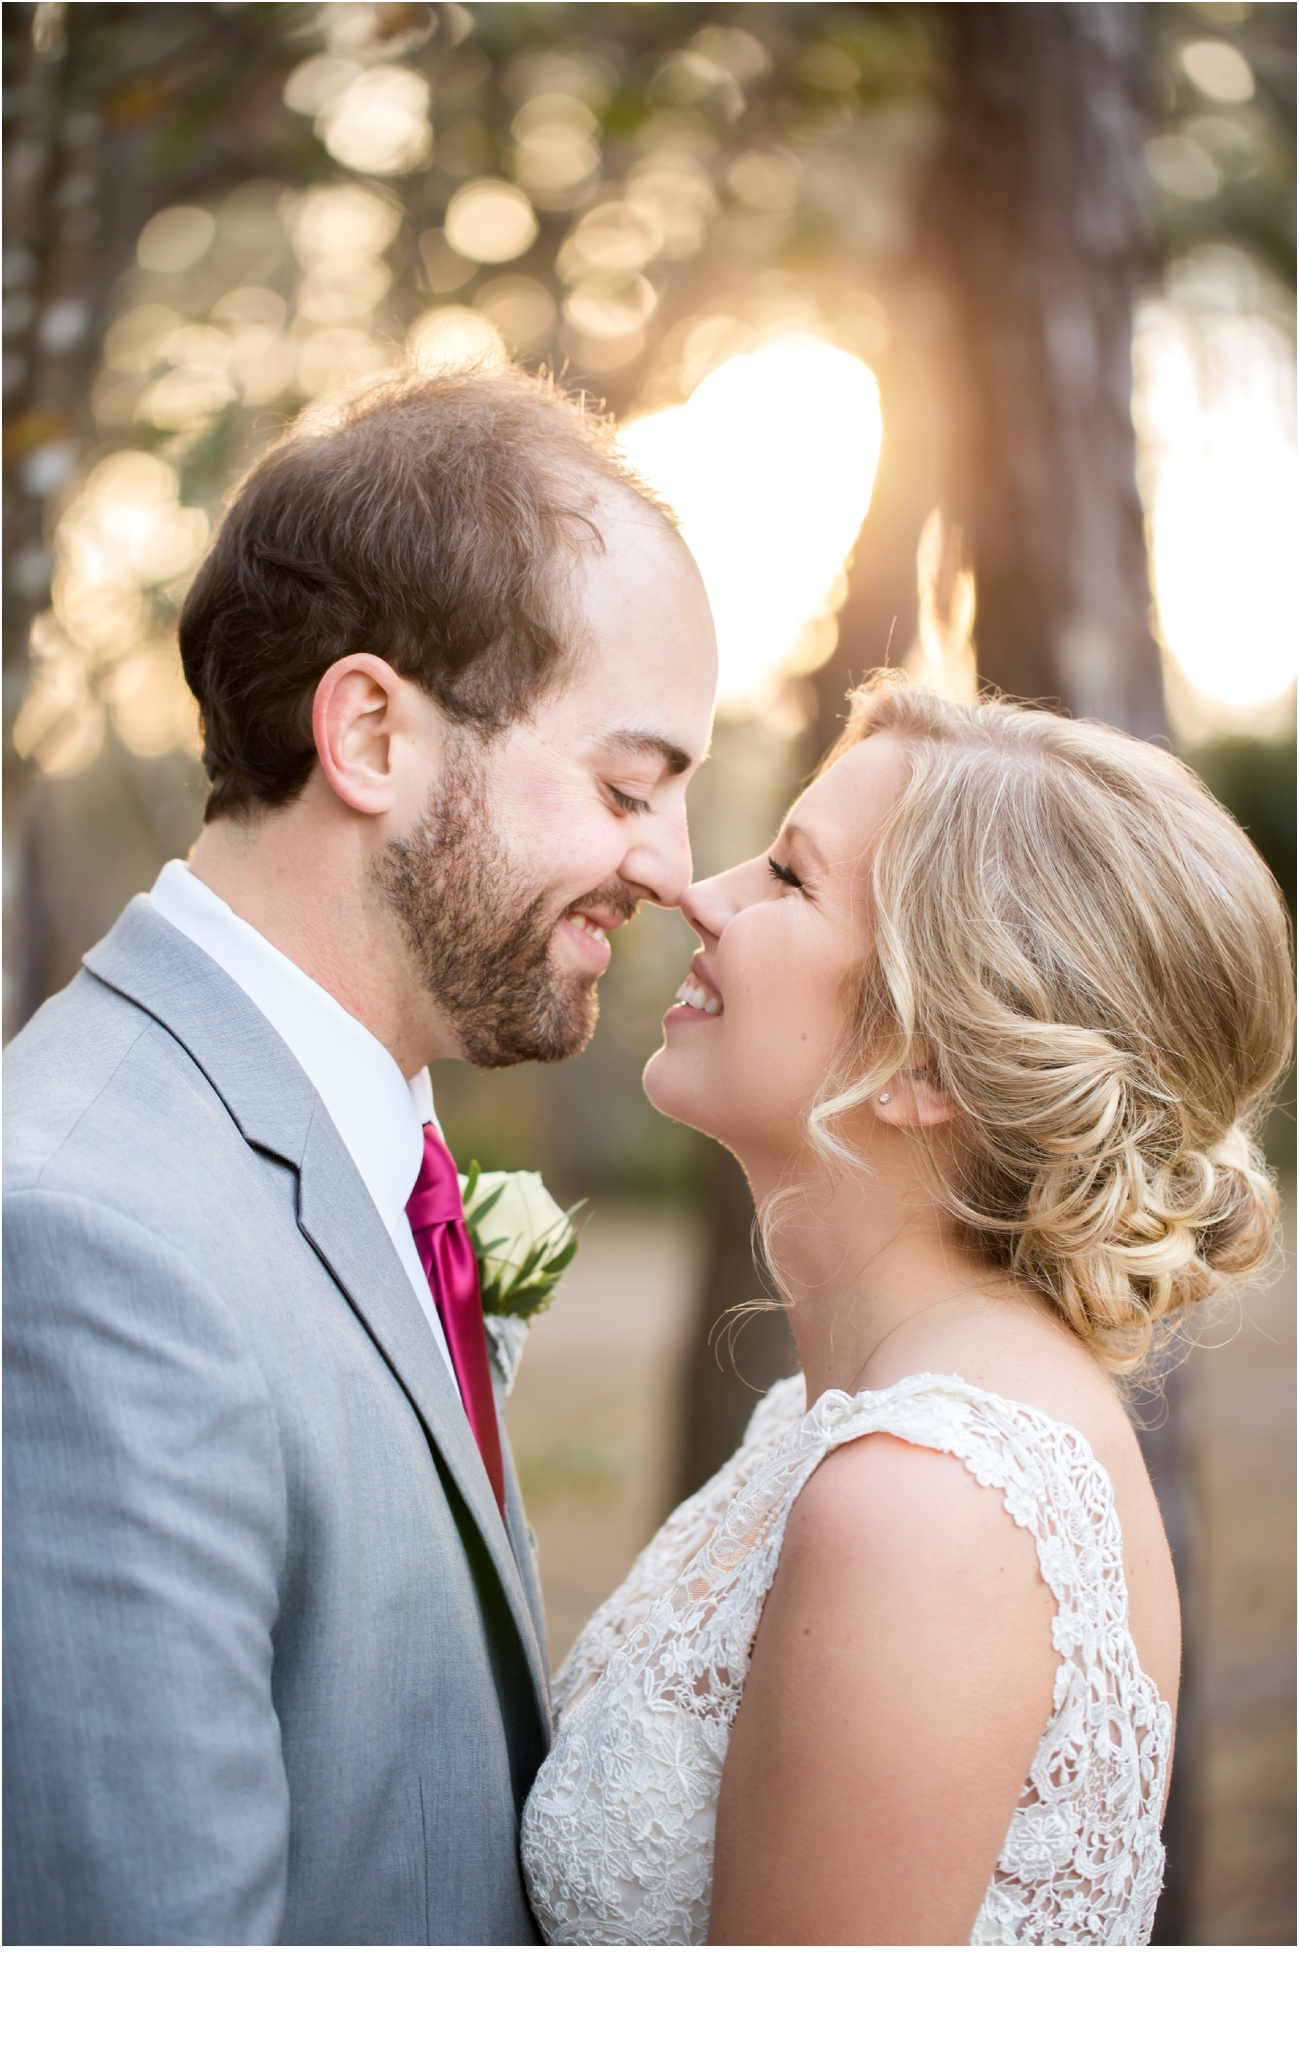 Rainey_Gregg_Photography_St._Simons_Island_Georgia_California_Wedding_Portrait_Photography_0509.jpg